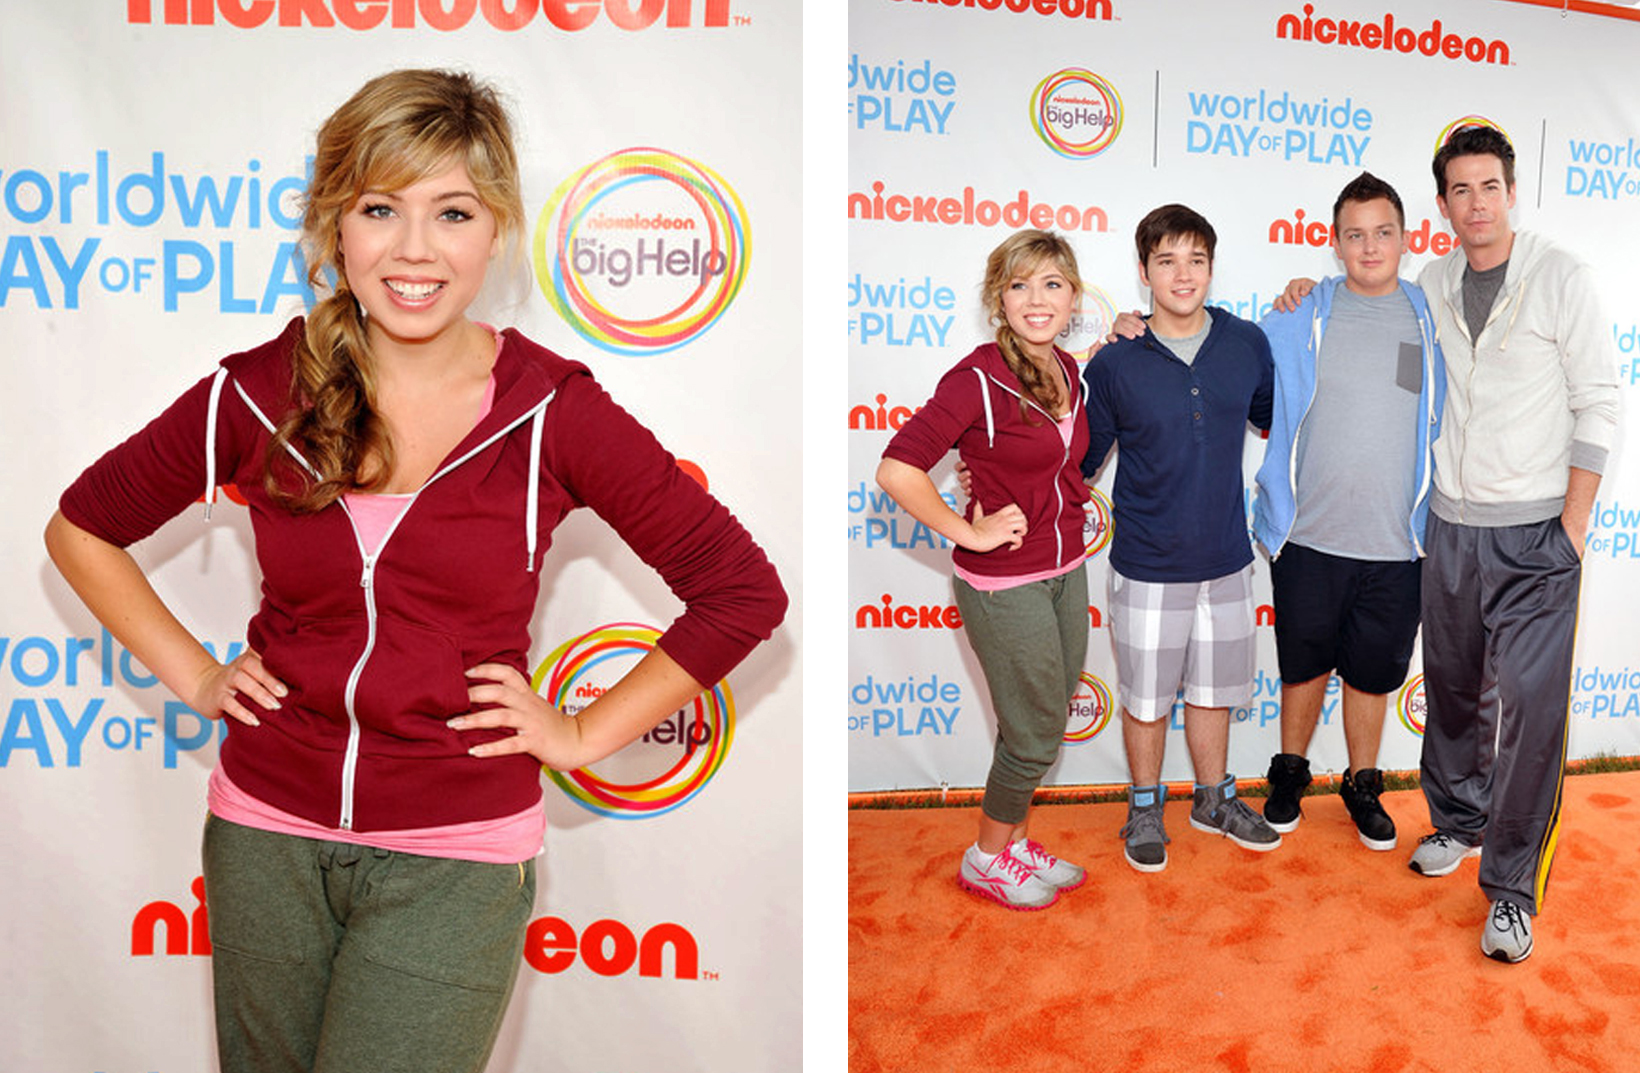 Nickelodeon-Big-Help-Worldwide-Day-of-Play-backdrop-RBMM